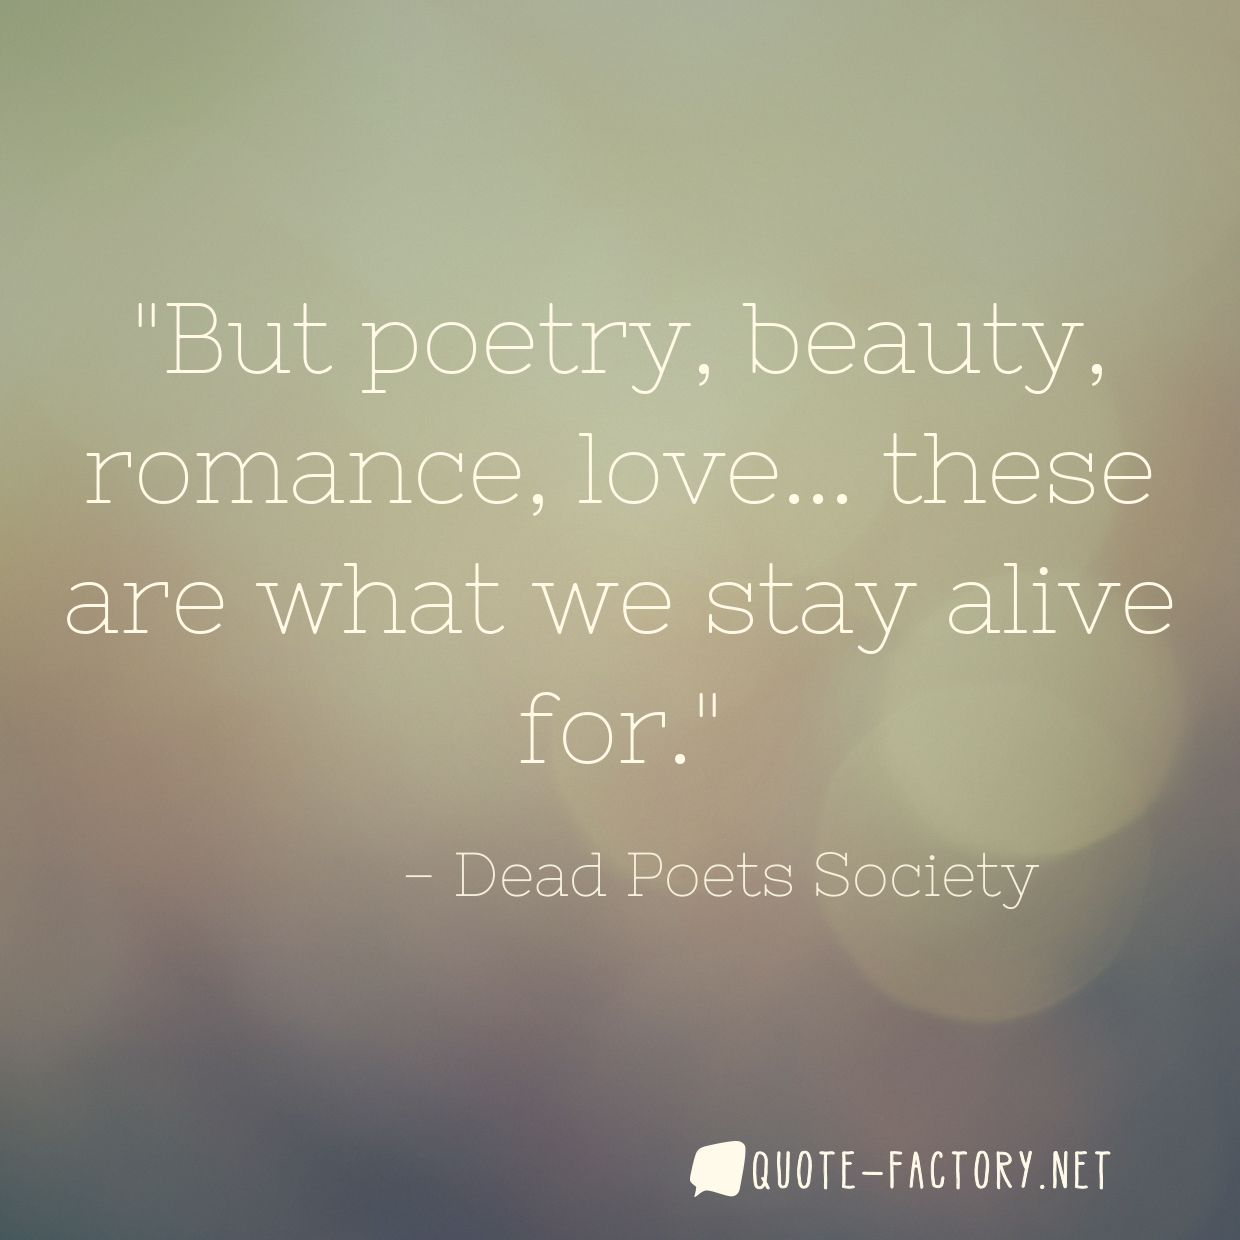 But poetry, beauty, romance, love... these are what we stay alive for.